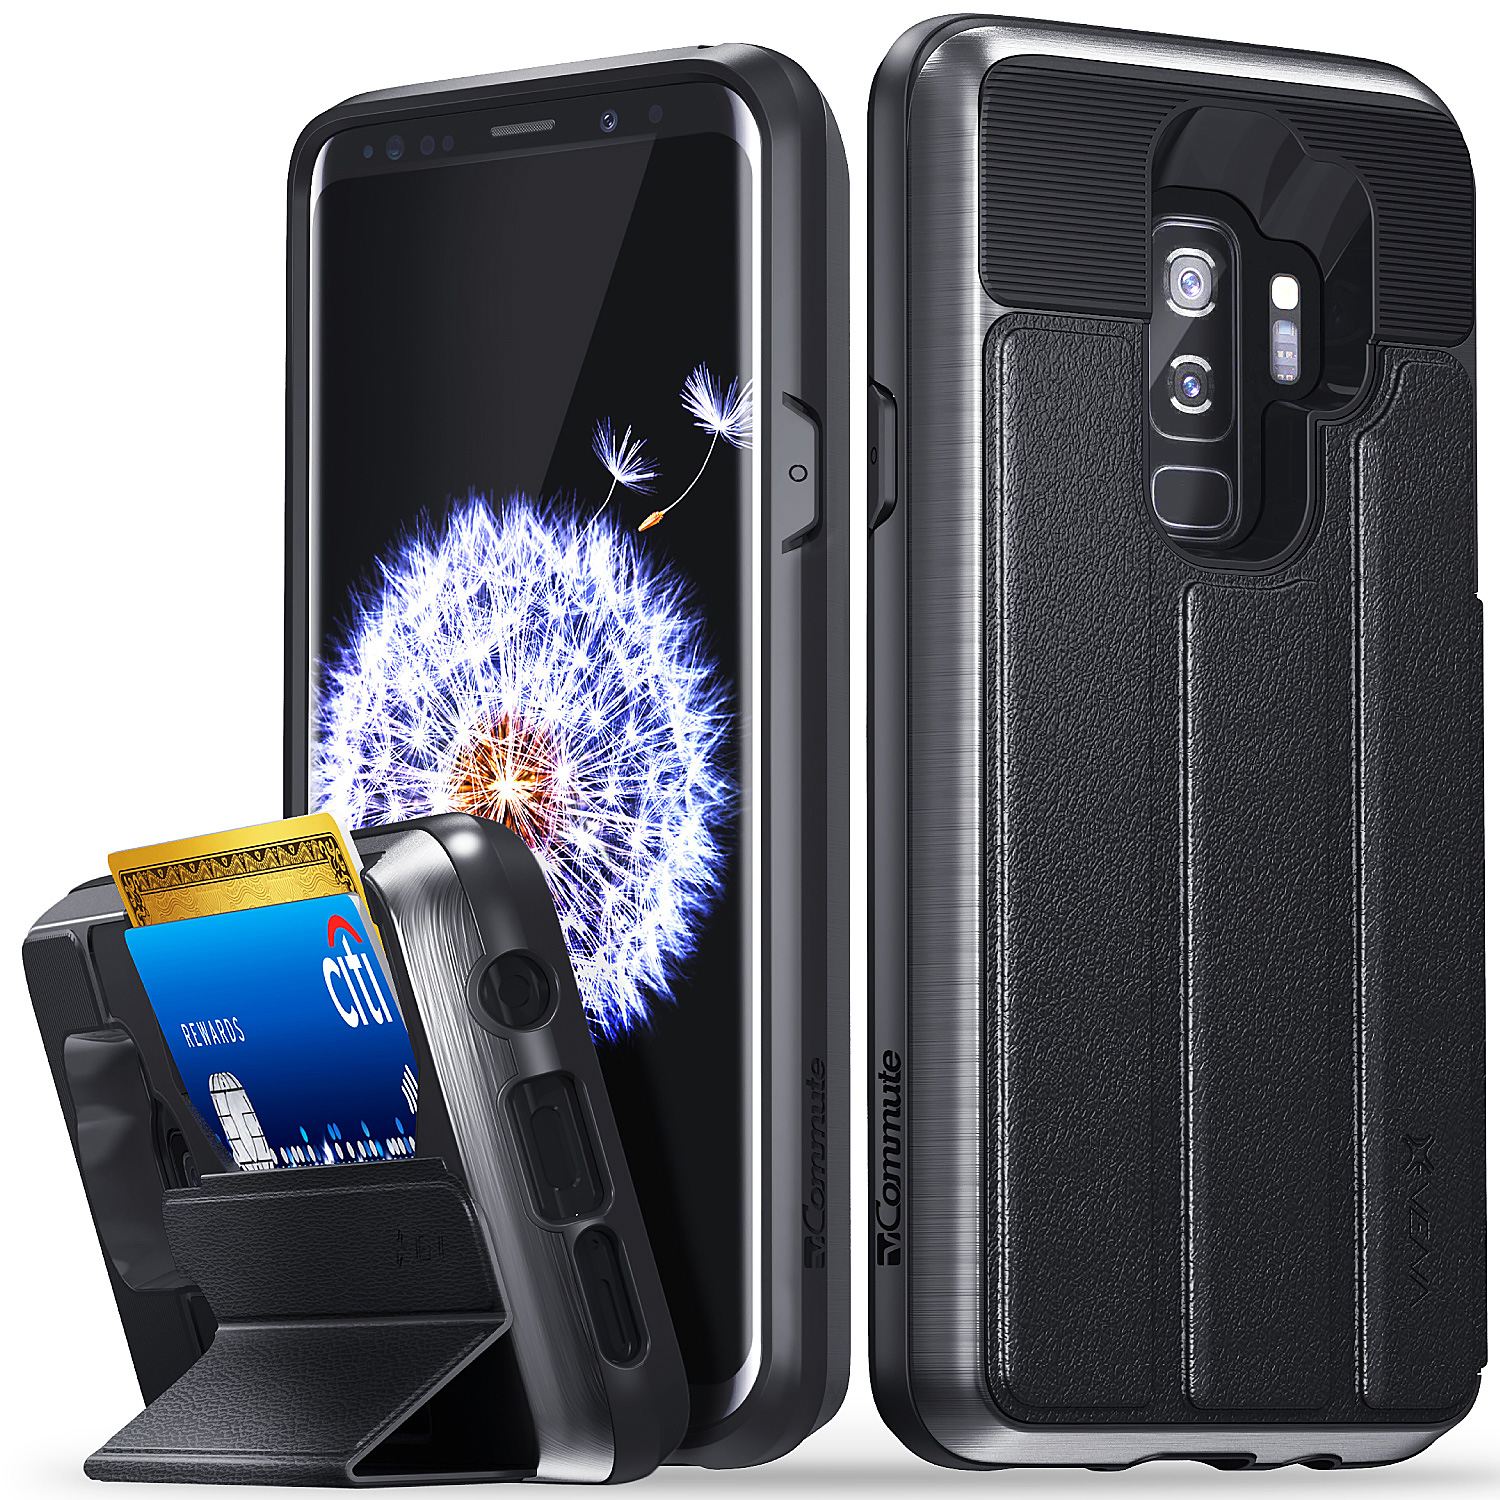 Galaxy S9 Plus Wallet Case, Vena Flip Leather Cover with KickStand for Samsung Galaxy S9+ Plus (Space Gray/Black)